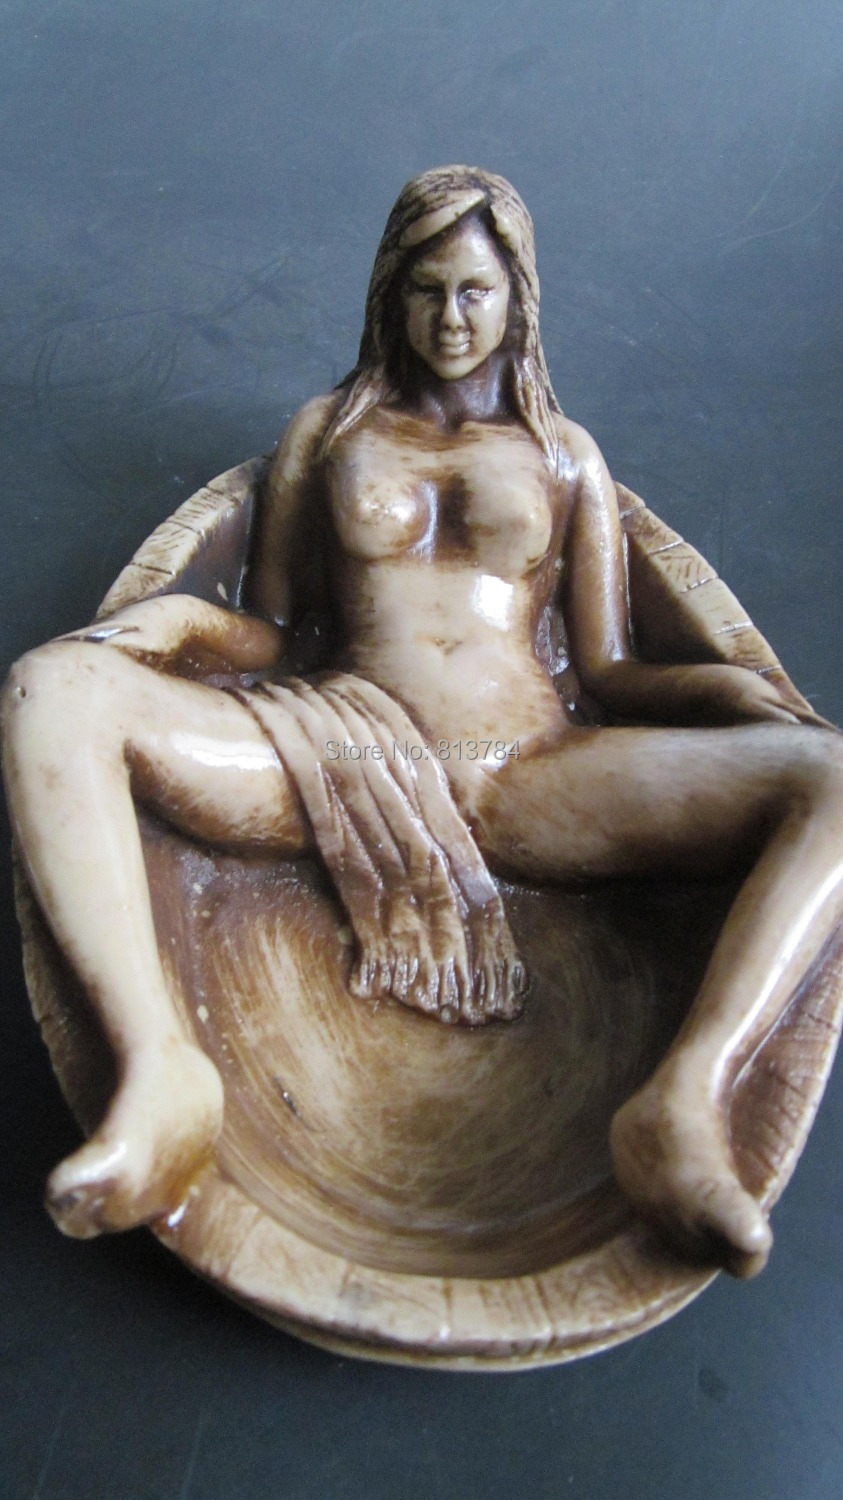 Can not Women having sex with statue